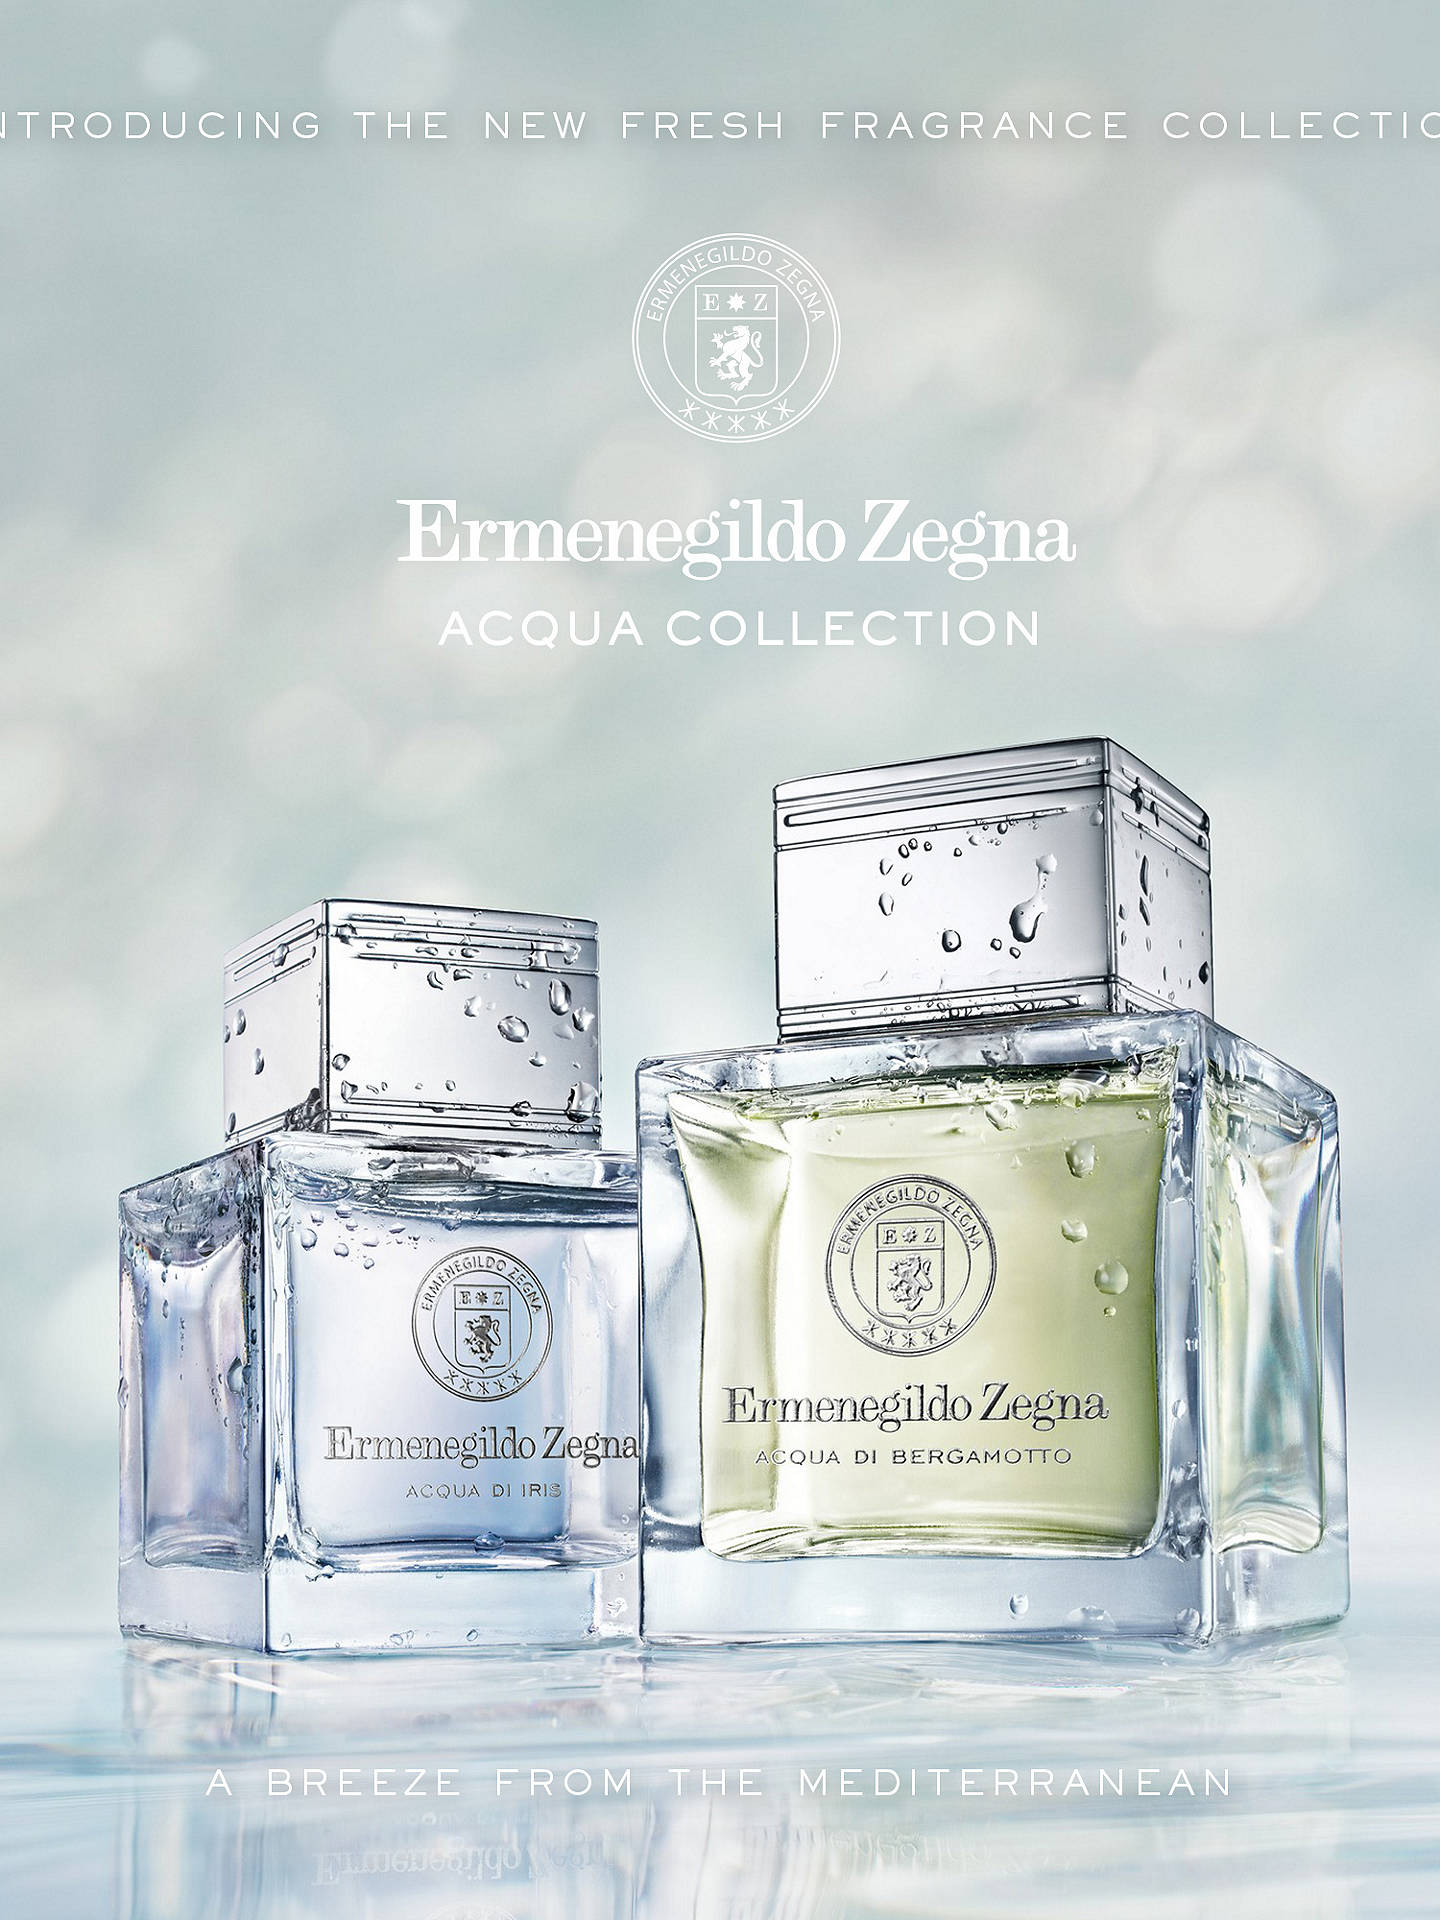 Buy Ermenegildo Zegna Acqua Di Iris Eau de Toilette, 100ml Online at johnlewis.com